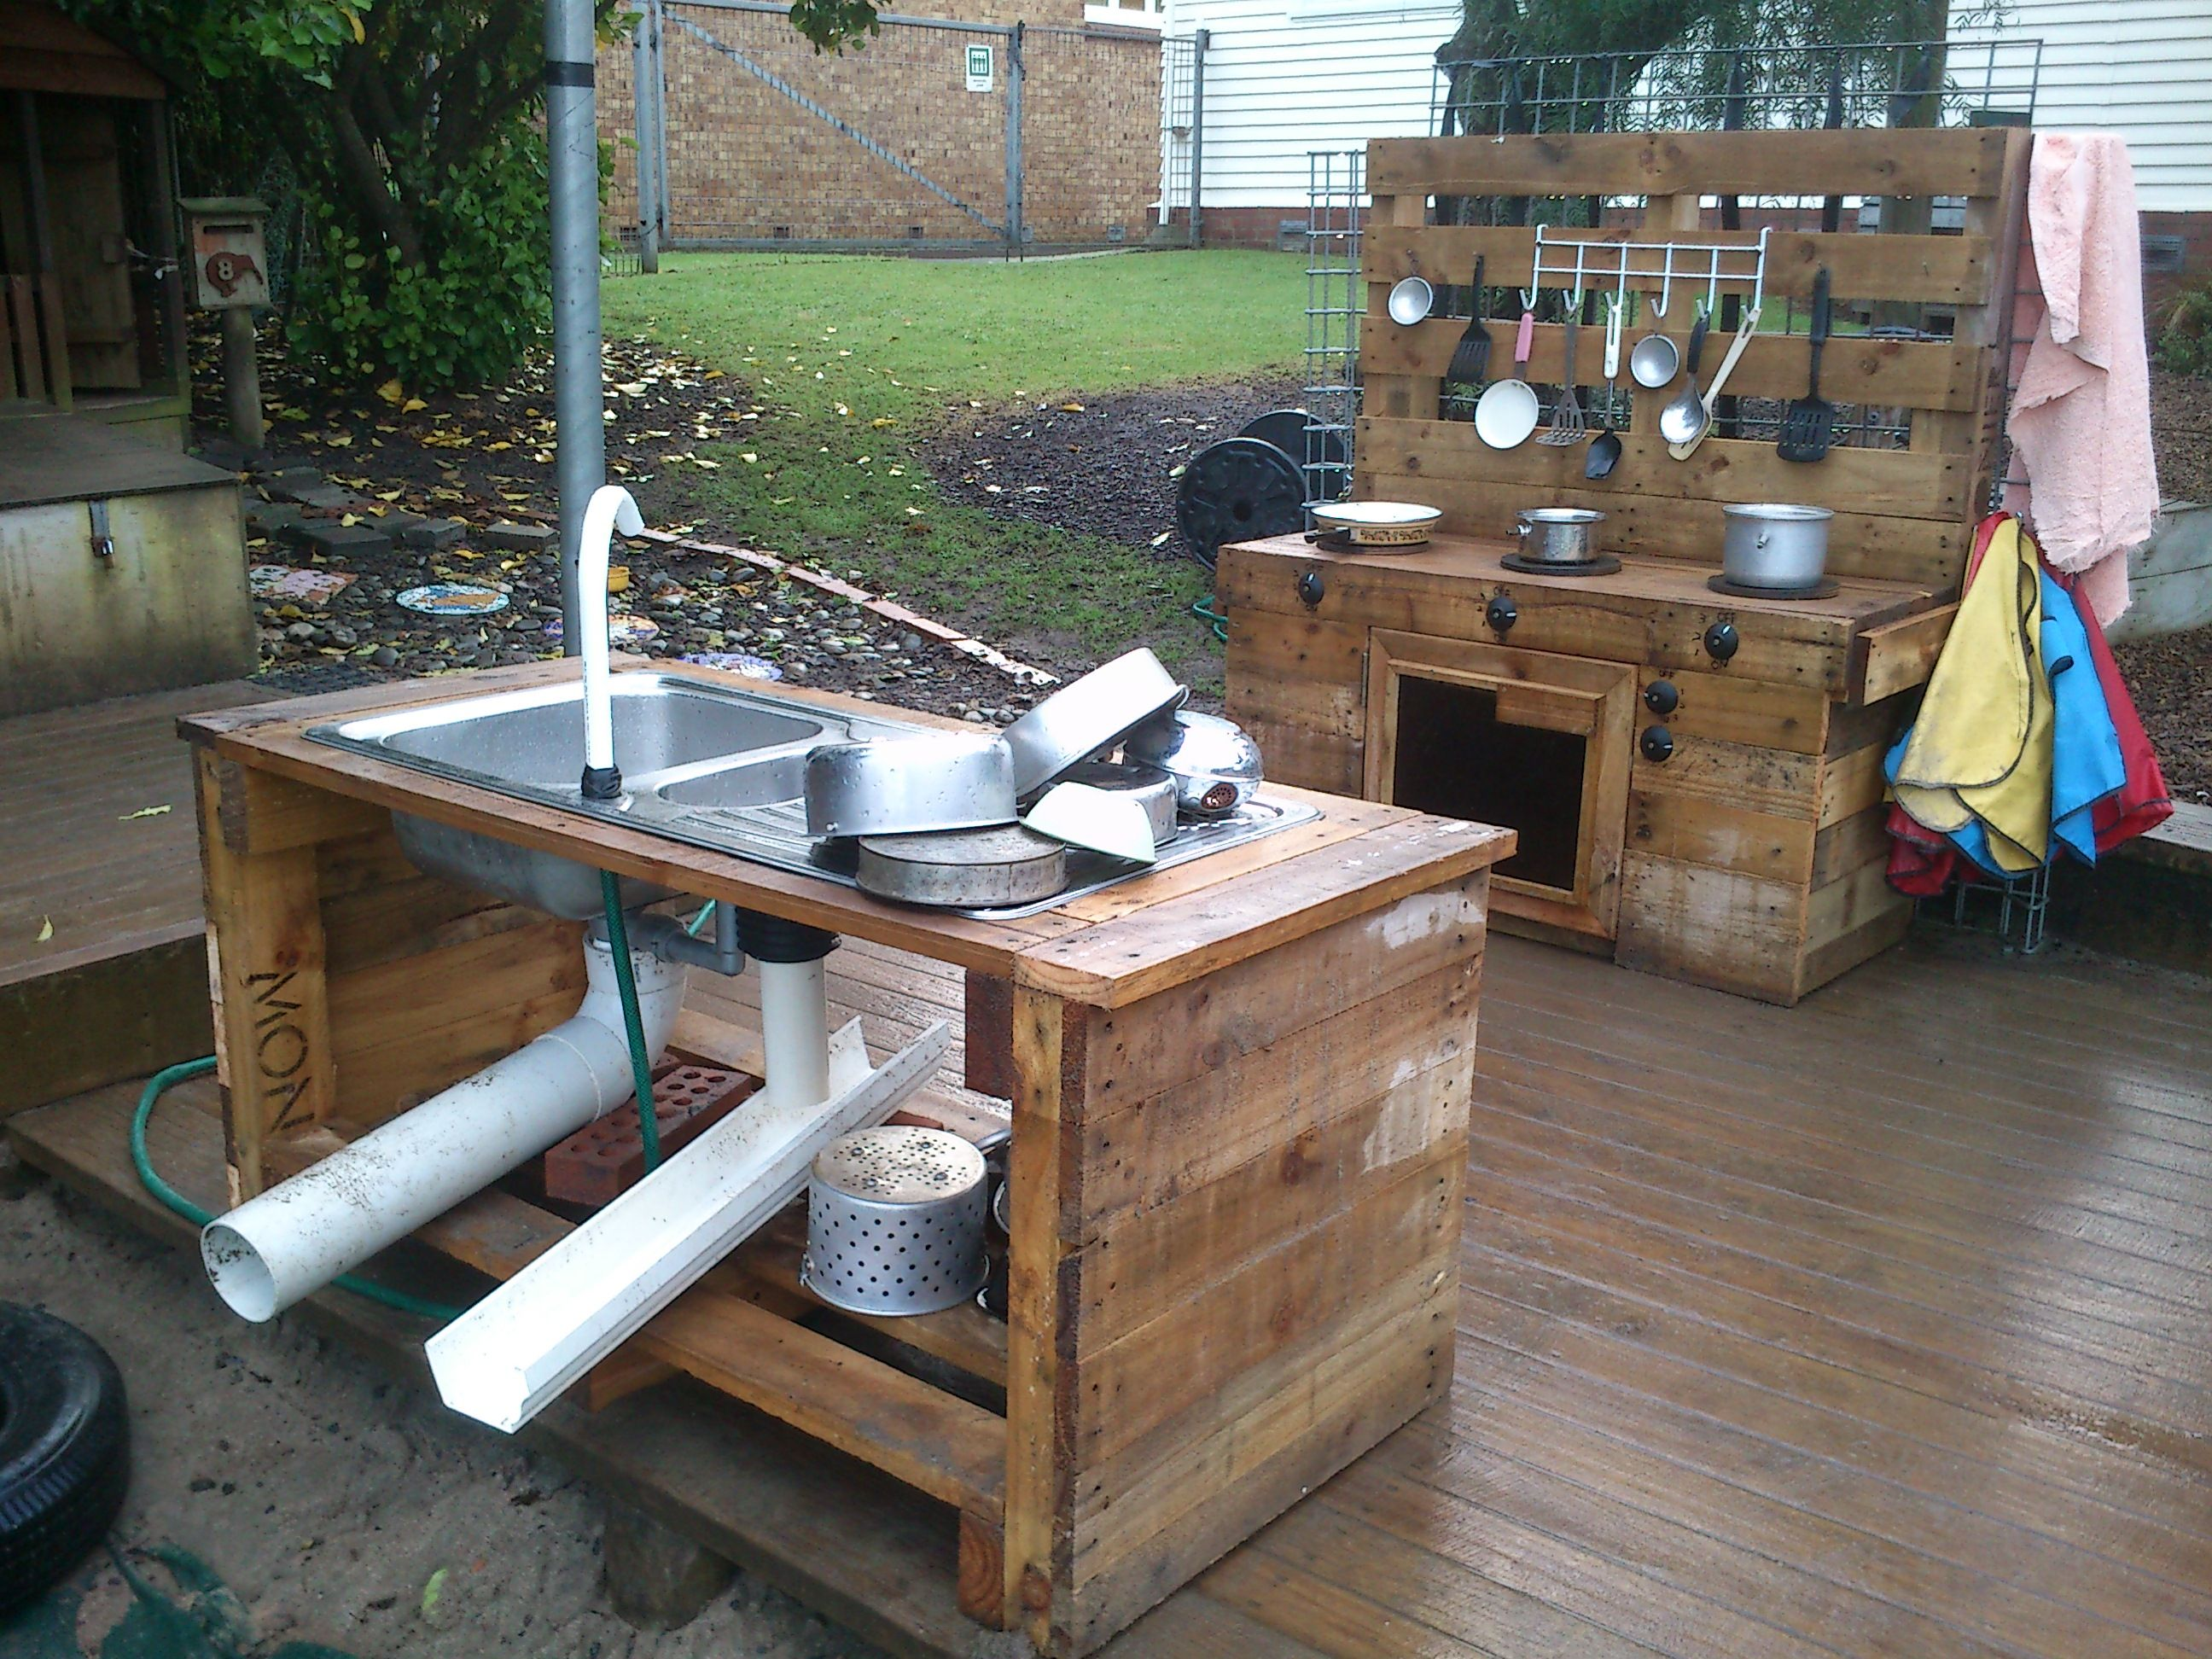 Full pallet kitchen near our sandpit my projects for Outdoor kitchen cabinets plans